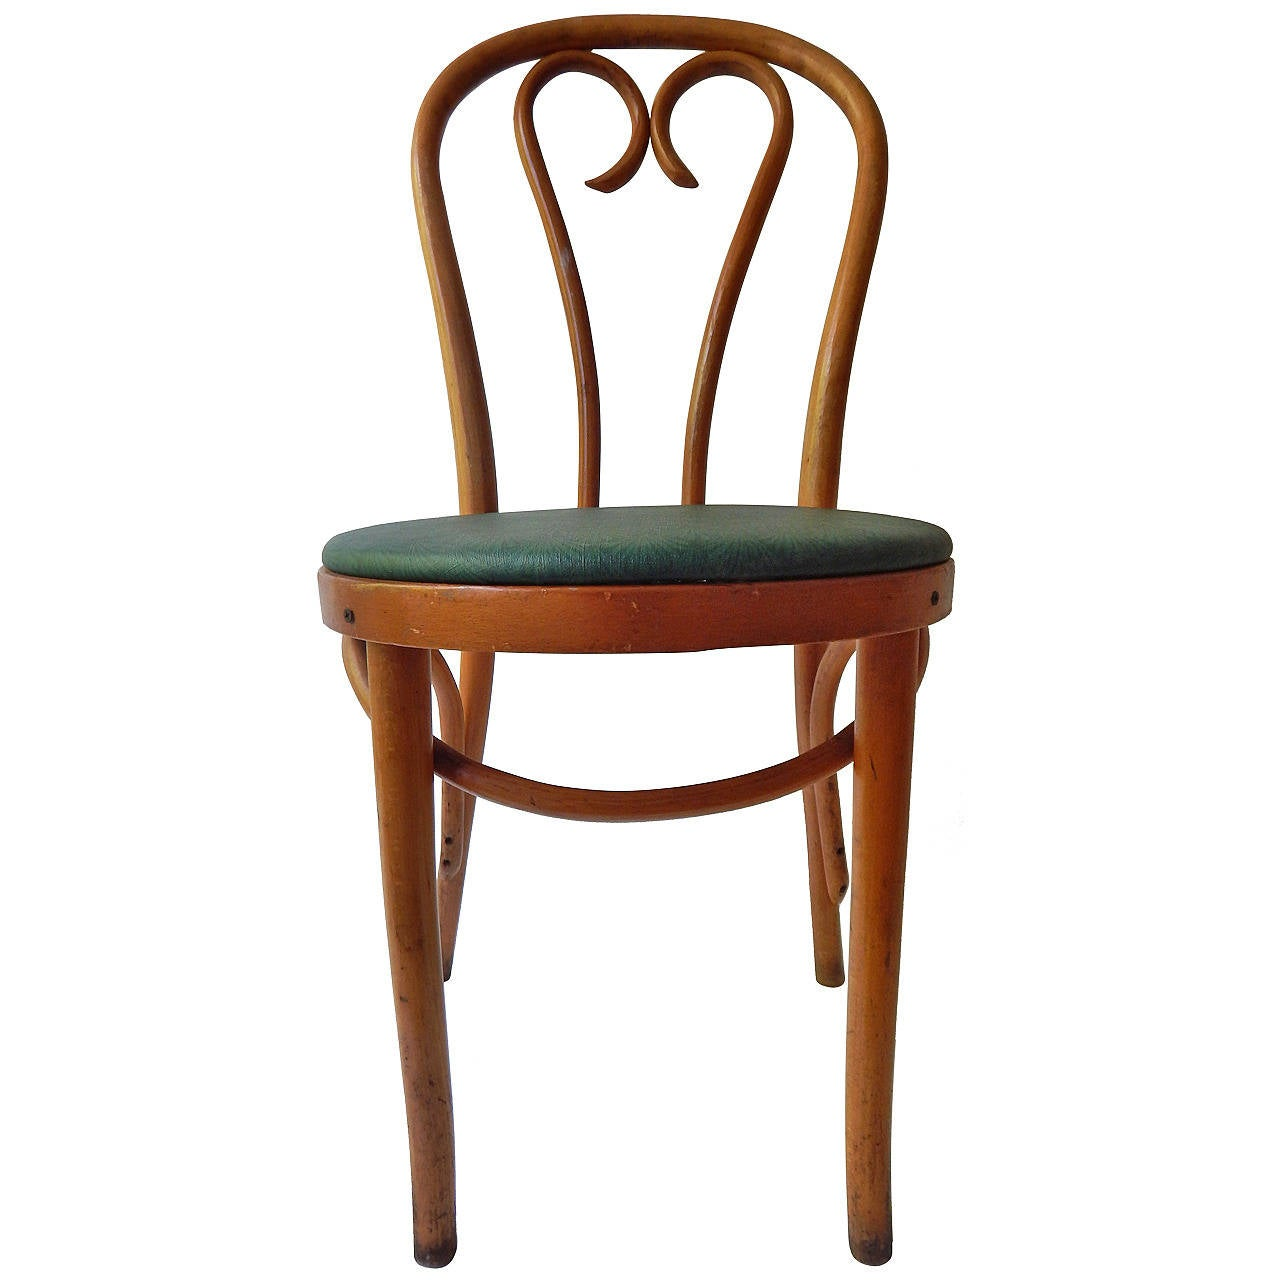 10 Thonet Bentwood Cafe Chairs 1